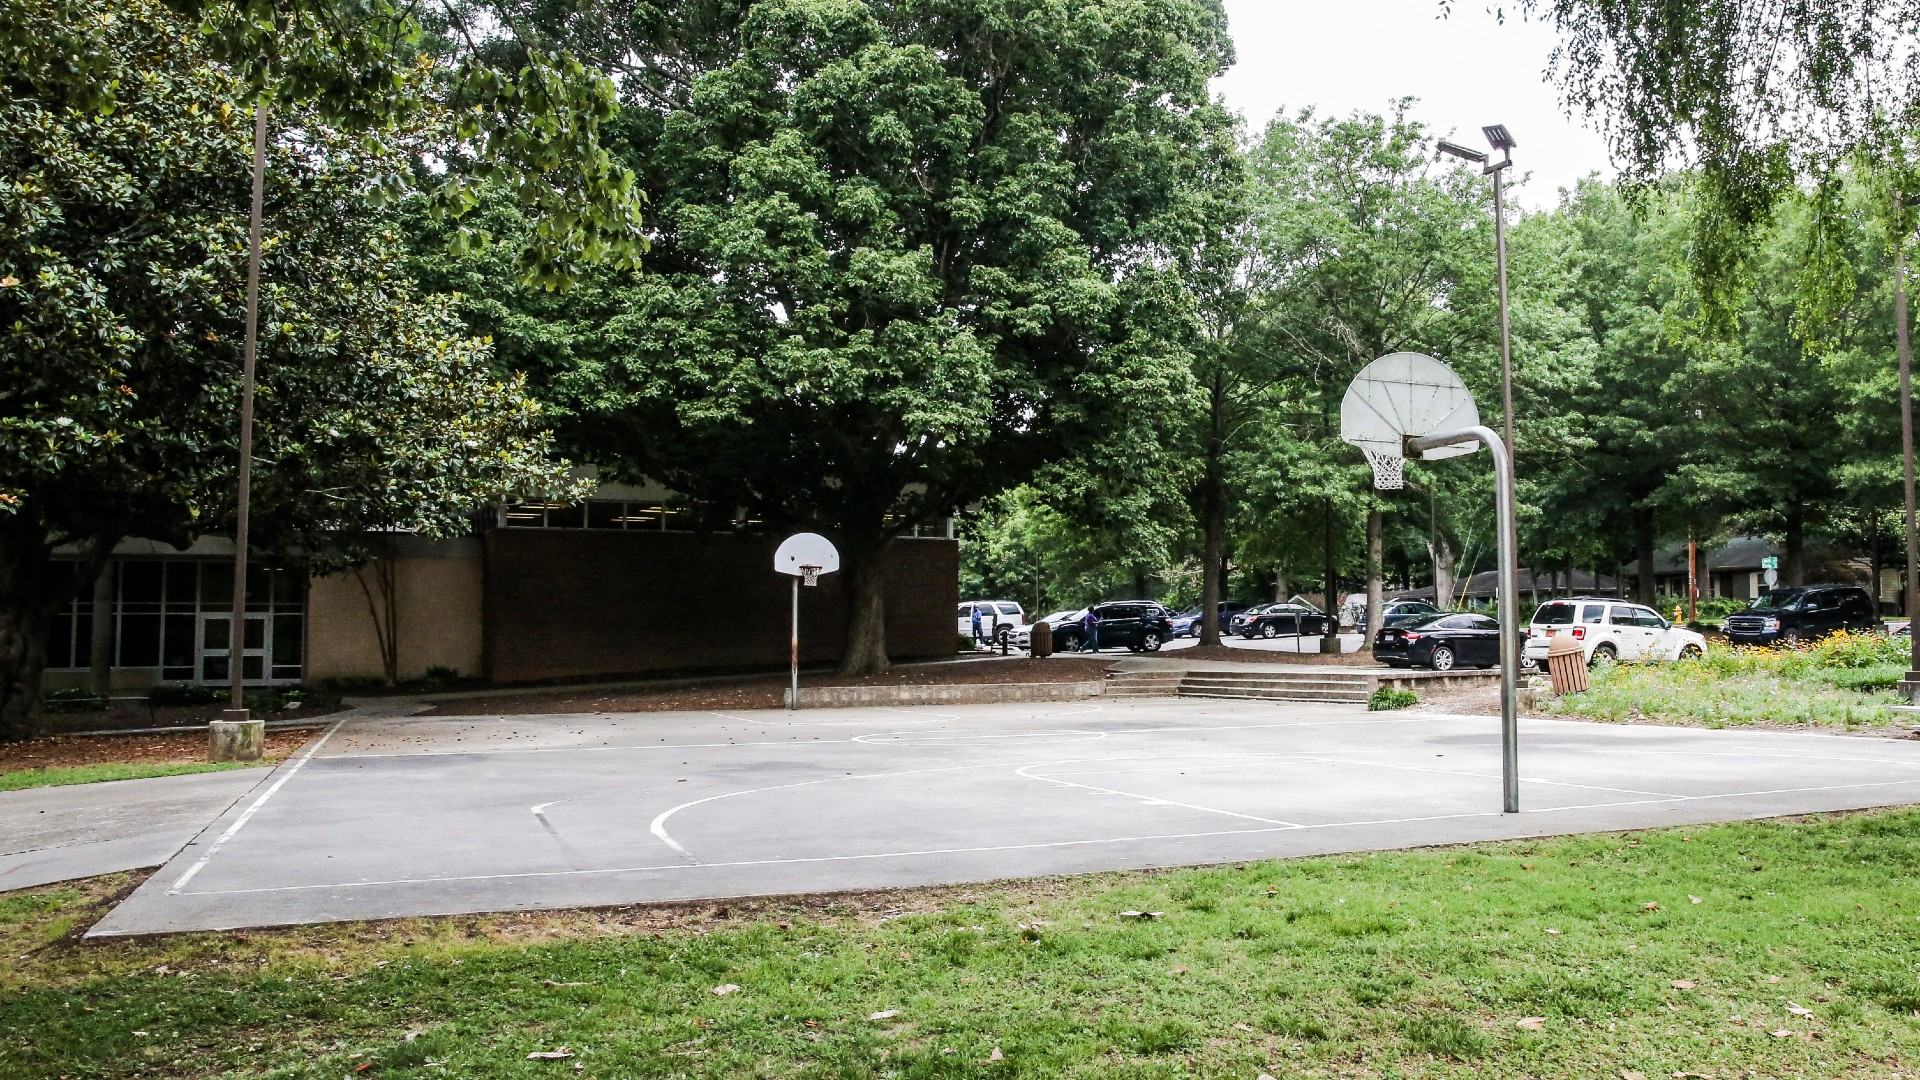 An outdoor basketball court with concrete surface